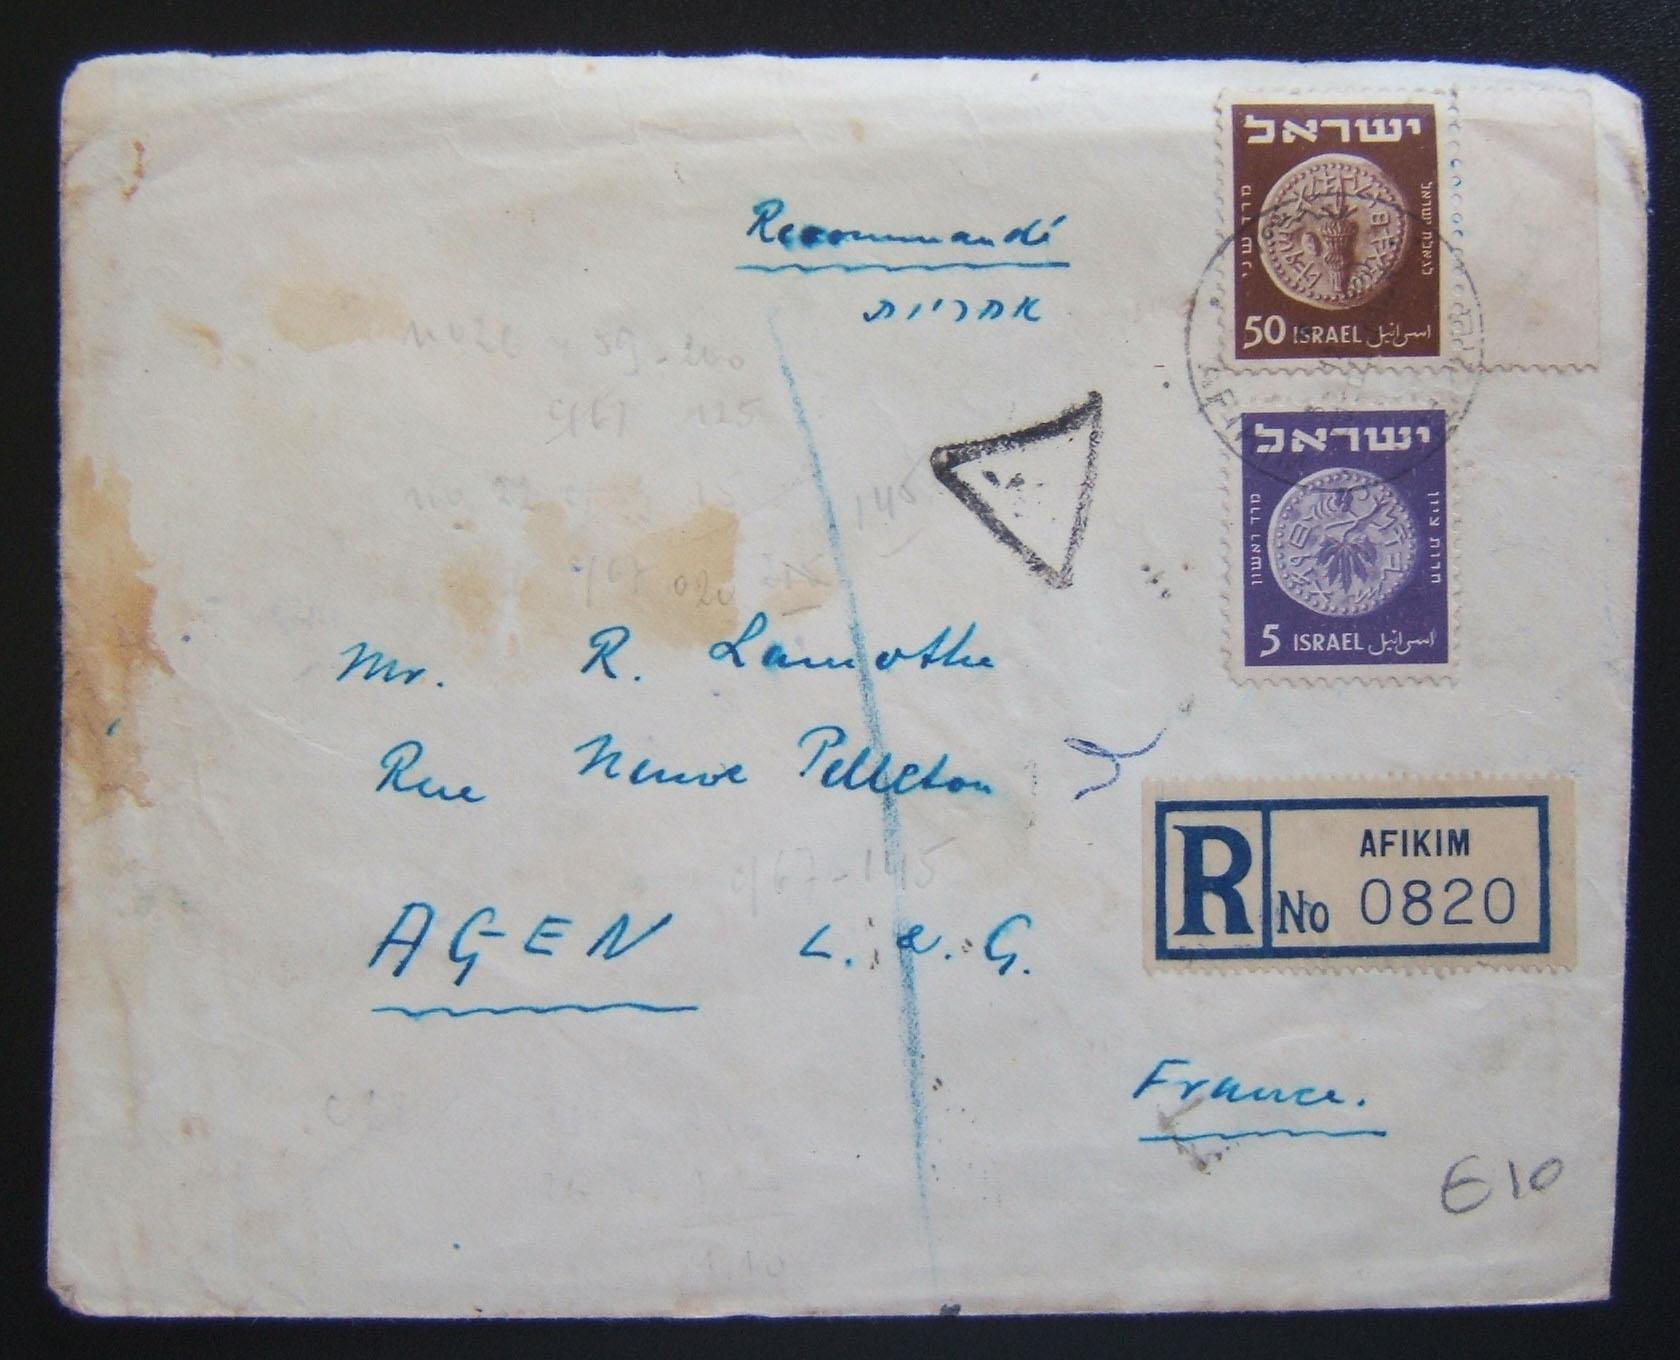 1950 2nd Coinage reg. surface mail: 8-12-1950 reg. comm cv ex AFIKIM to FRANCE franked 55pr per SU-2 period rate (30pr letter + 25pr reg fee) using 5pr & 50pr Ba22/26, tied by sing